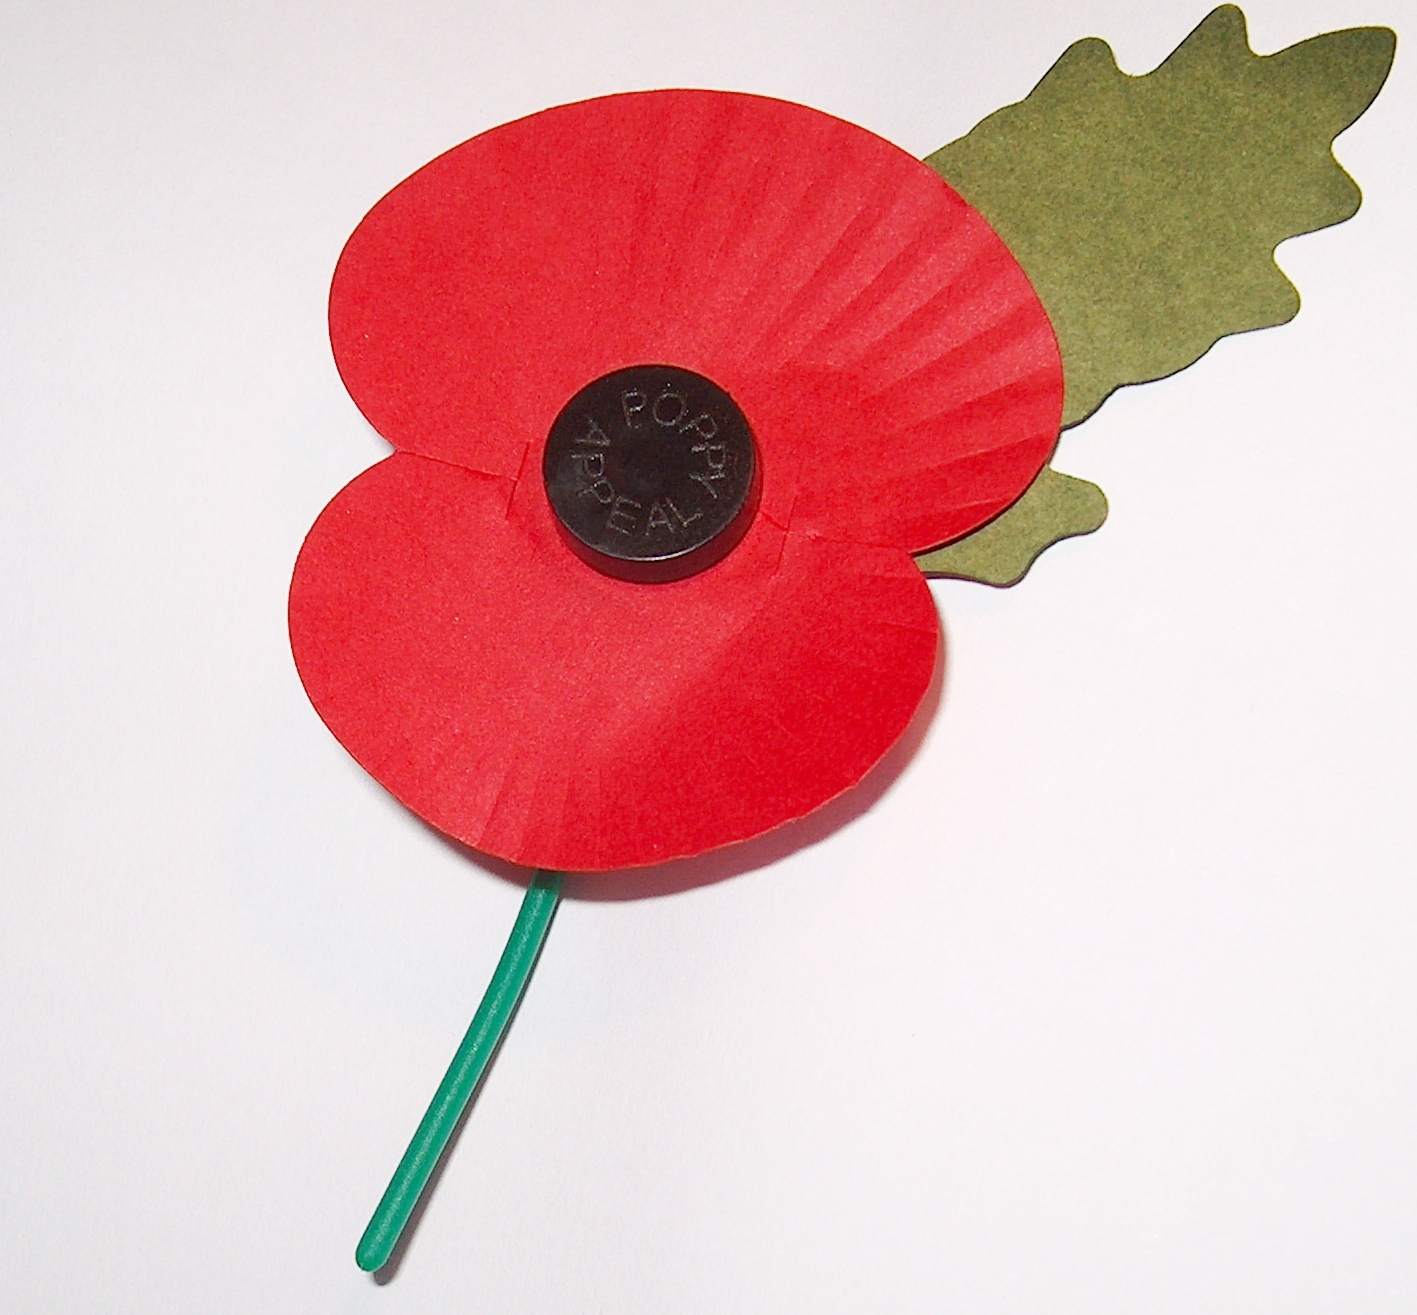 Who Is The Red Poppy Designed To Remember The Answer Might Surprise